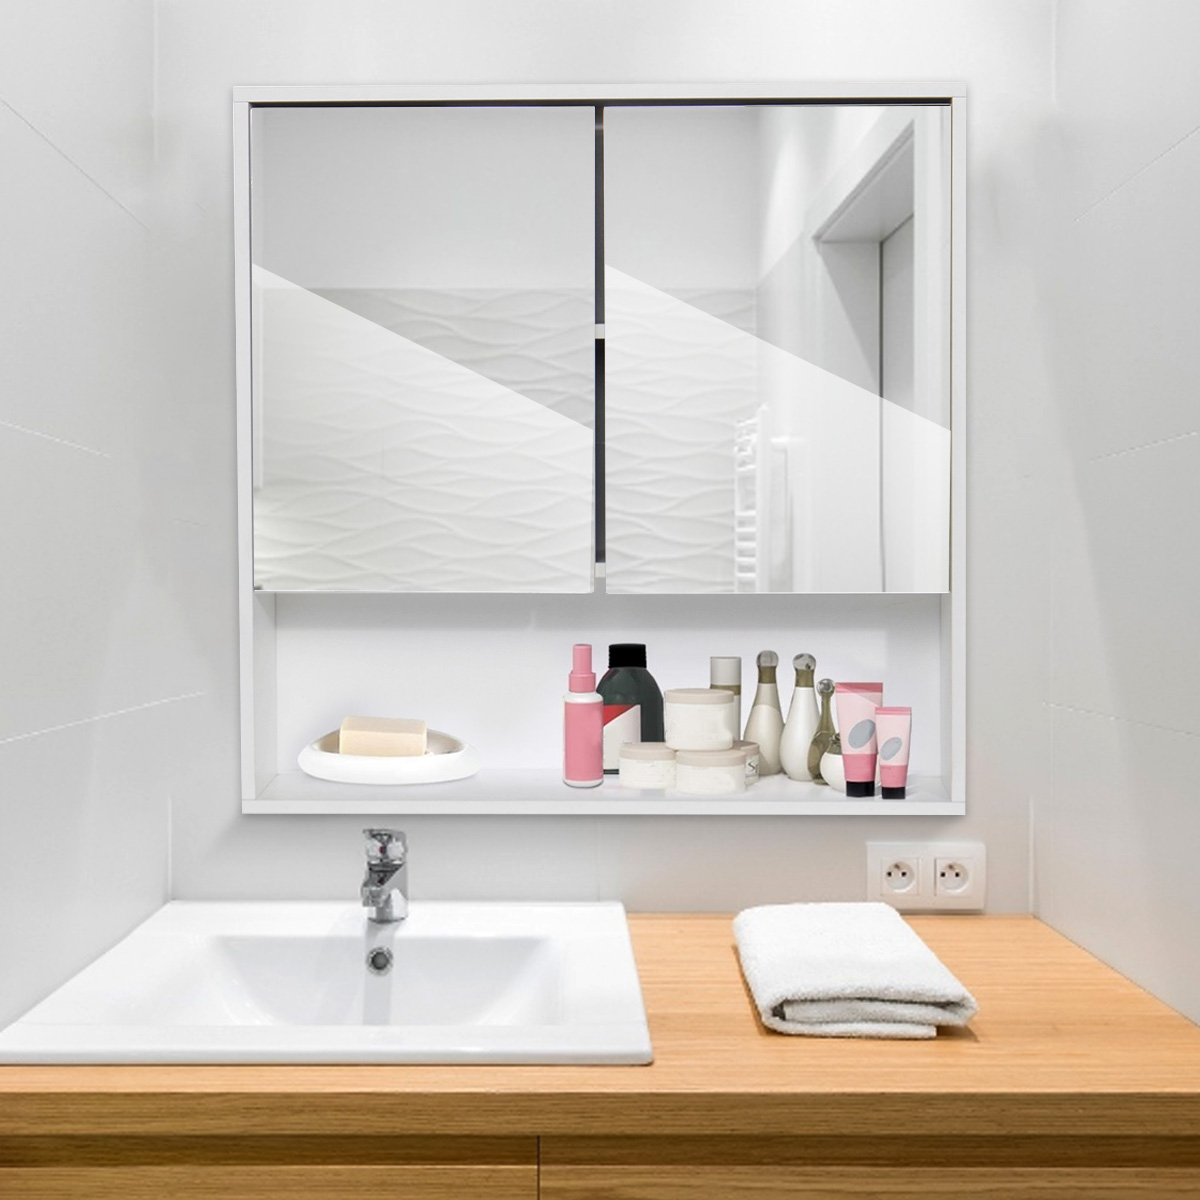 Double mirror bathroom cabinet forehead thermometer fever